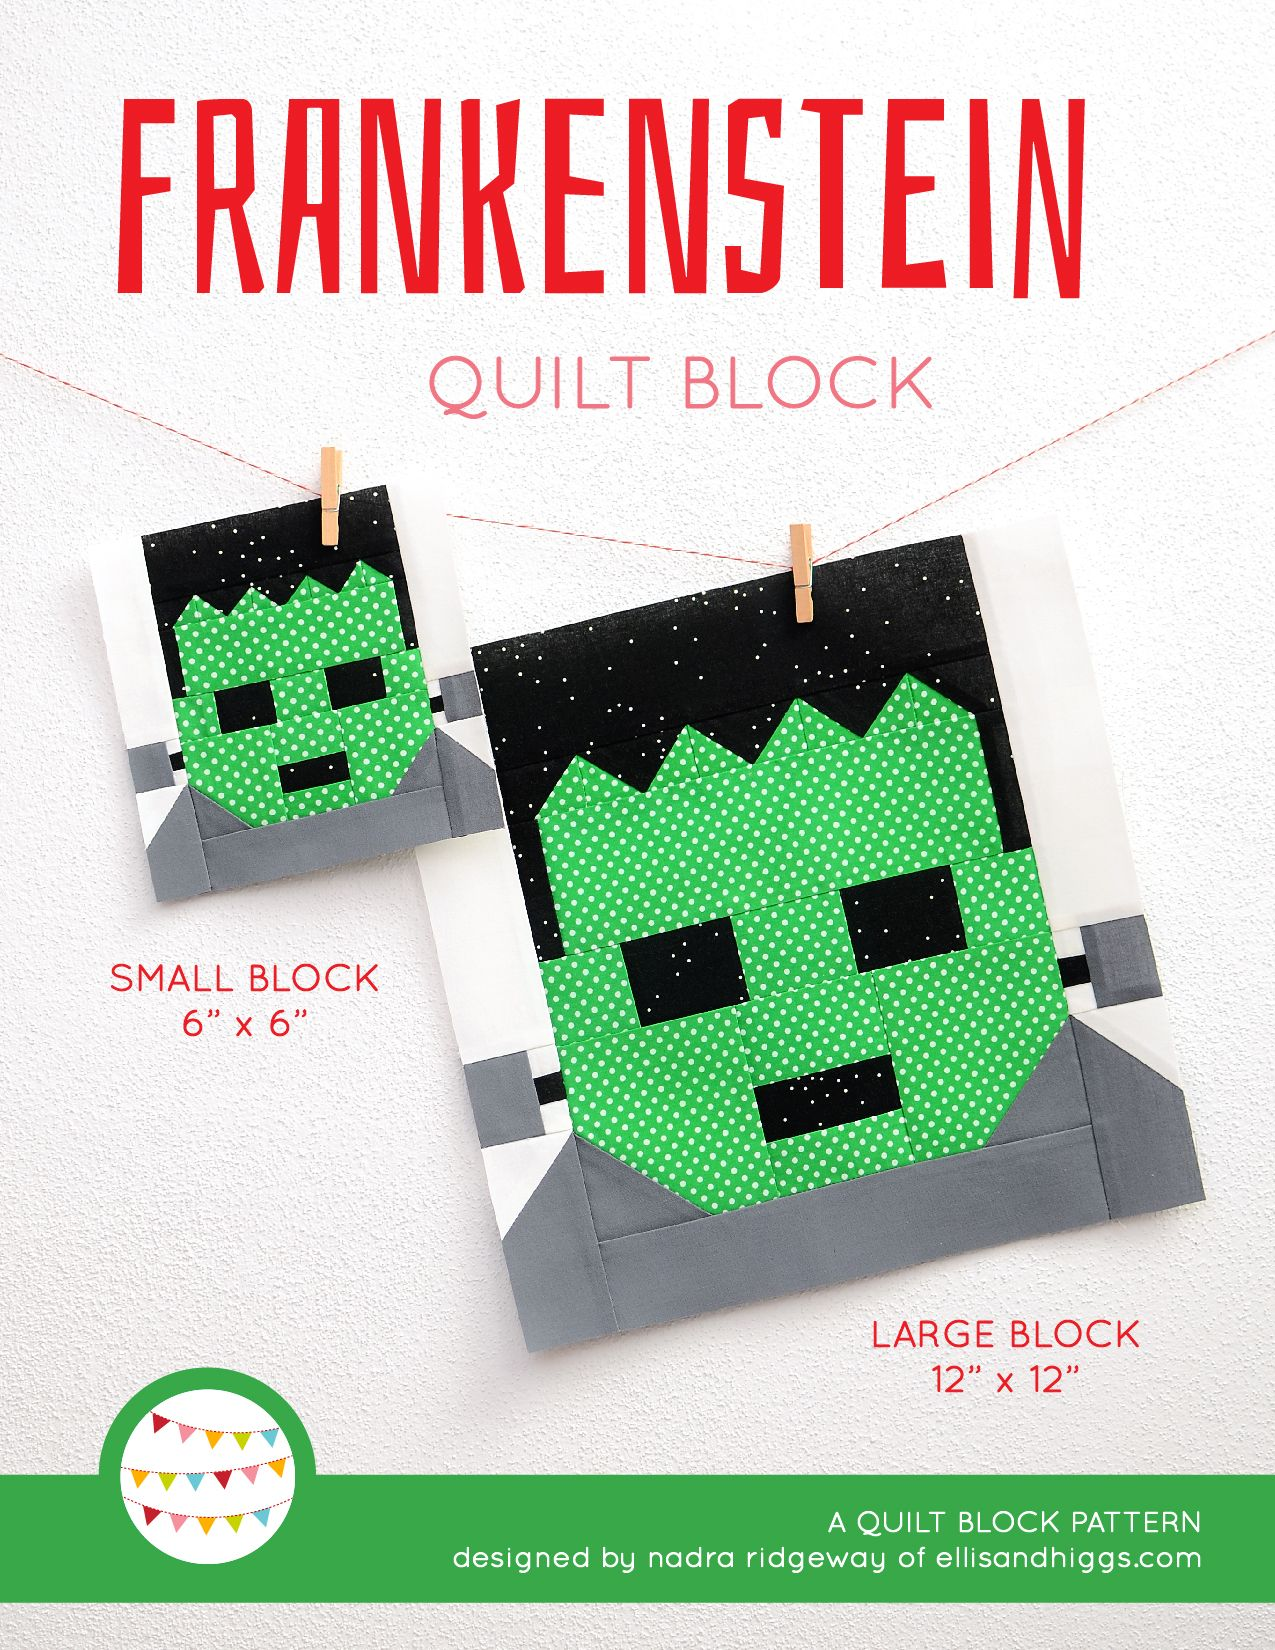 Halloween quilt patterns availabe now #tippsundtricks